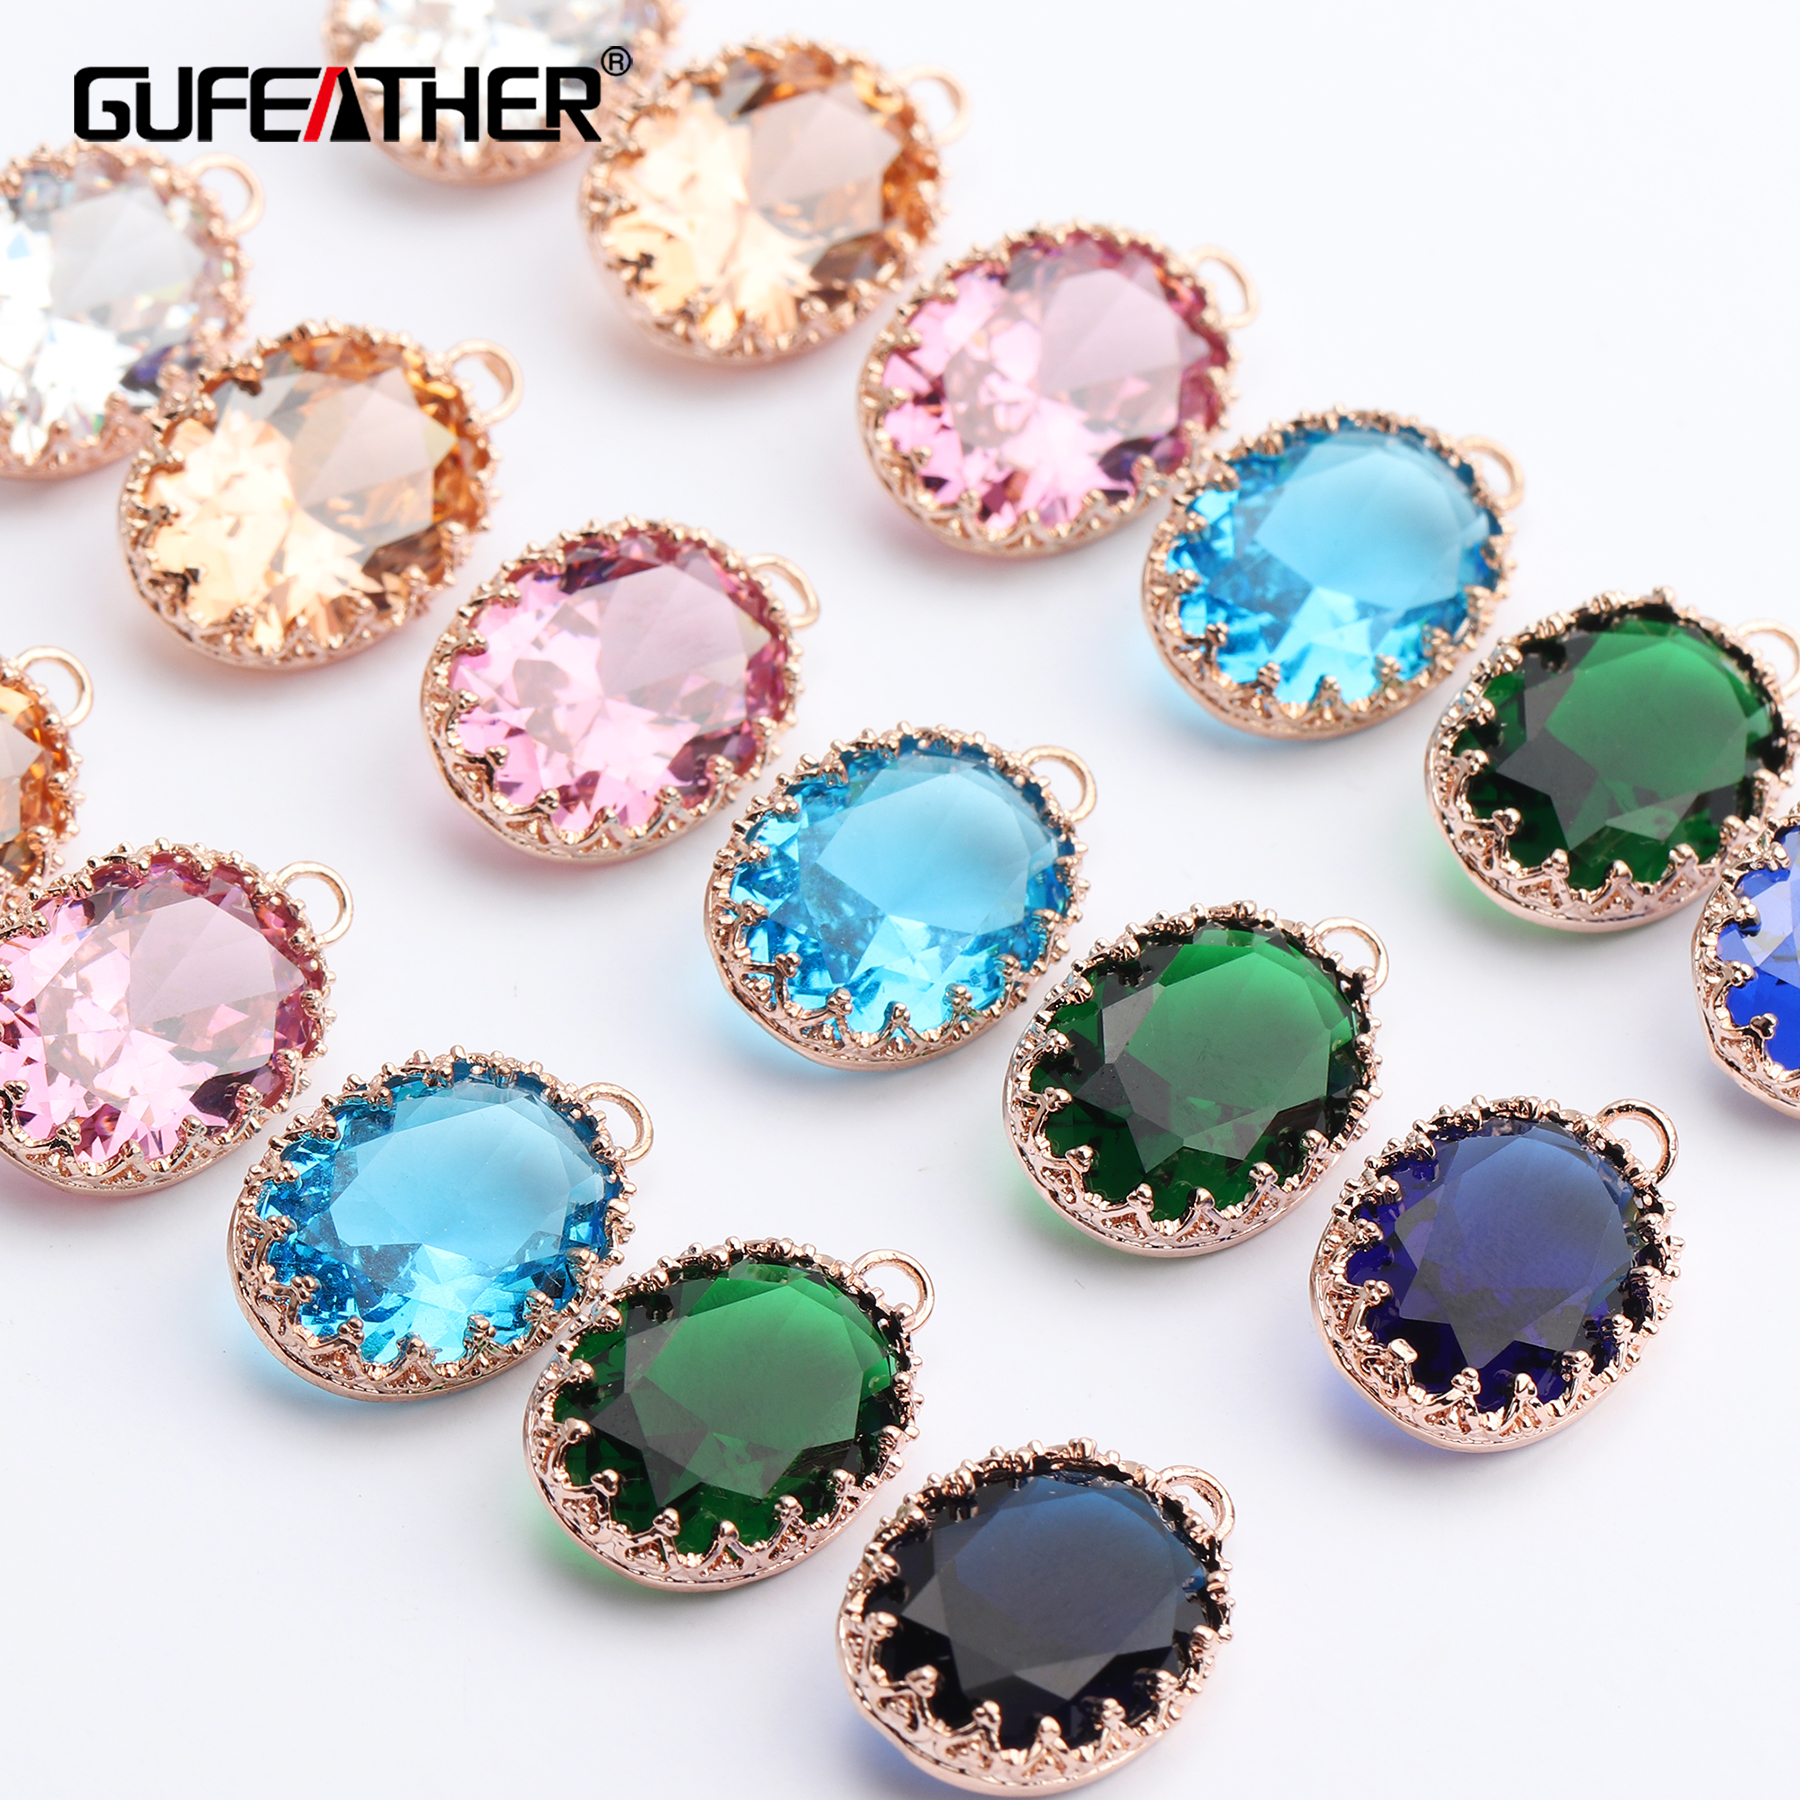 GUFEATHER M454,jewelry Accessories,jump Ring,diy Zircon Pendant,18k Gold Plated,hand Made,diy Earring,jewelry Making,6pcs/lot